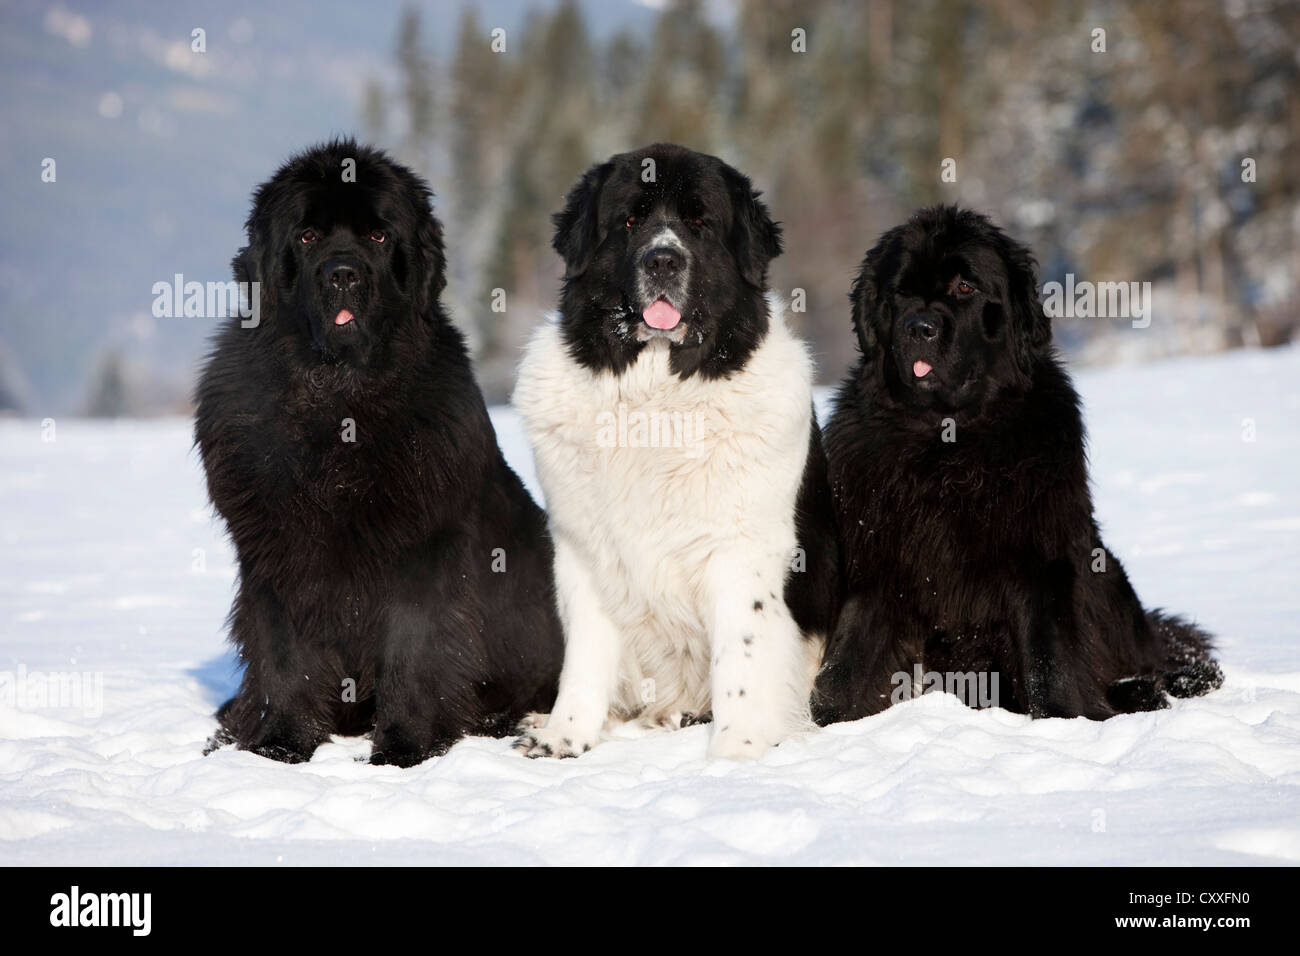 Three Newfoundland dogs sitting in the snow, North Tyrol, Austria, Europe, NON EXCLUSIVE USAGE: CALENDAR, WORLDWIDE, - Stock Image